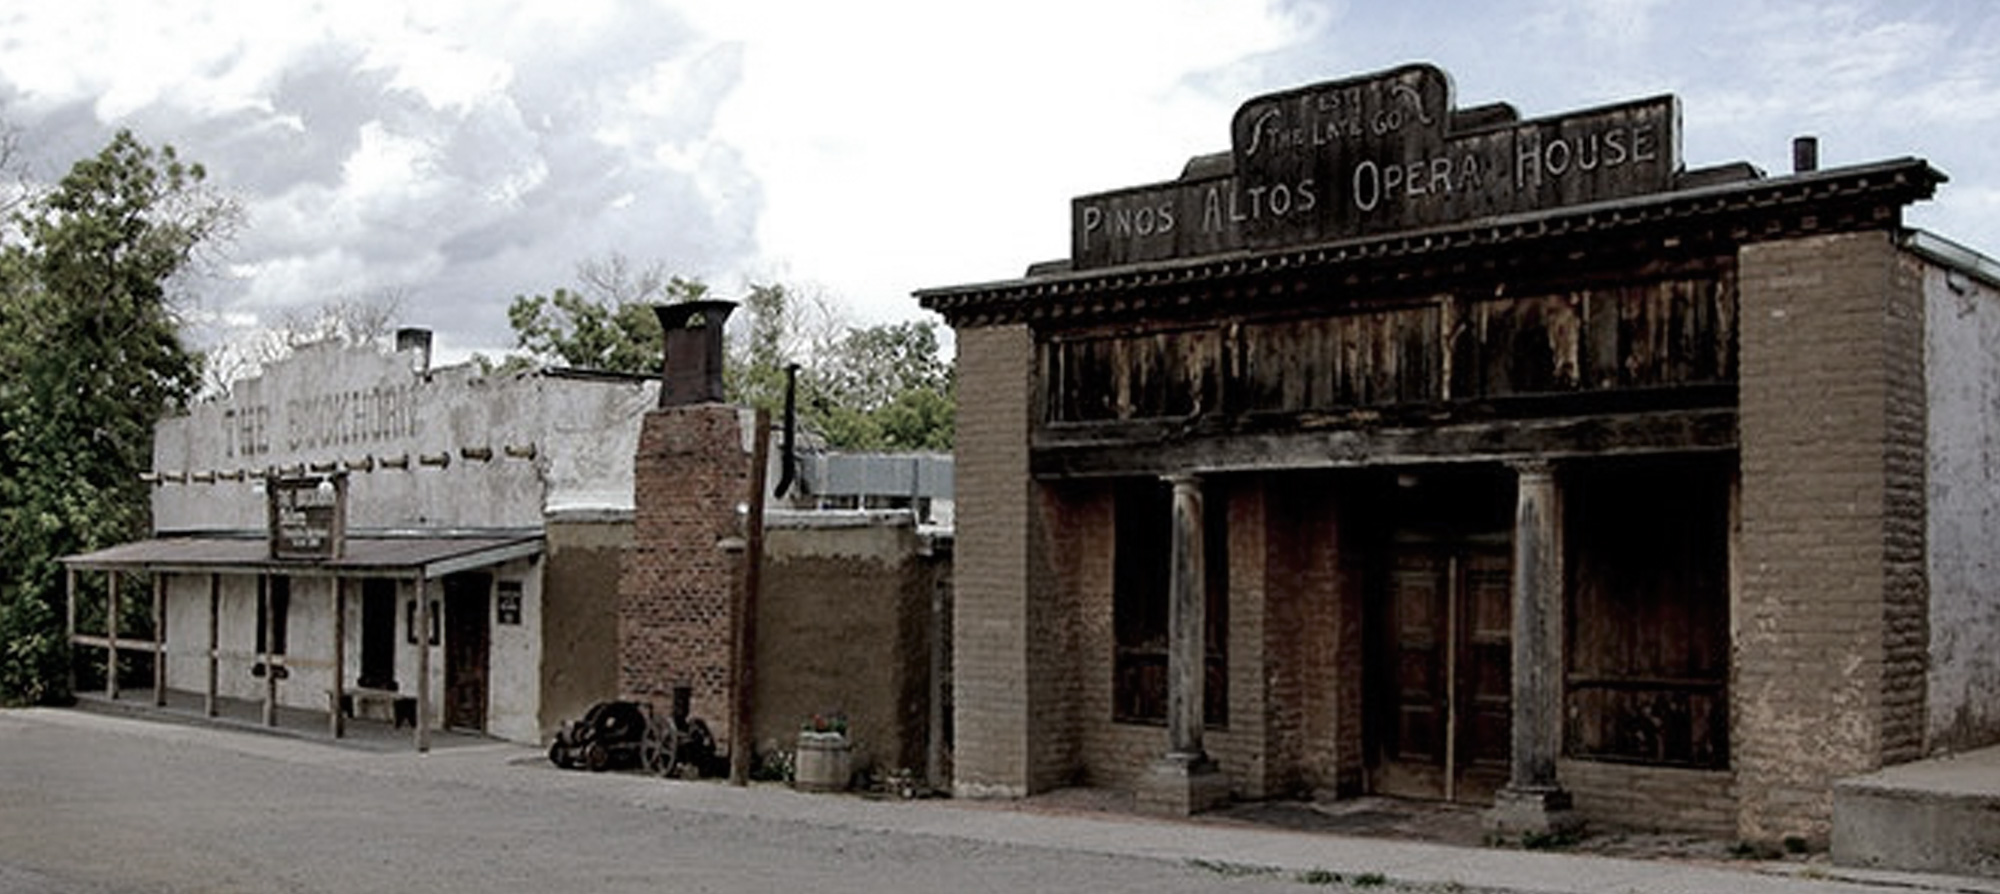 Two of the oldest still standing buildings in Pinos Altos. The Buckhorn saloon and Pinos Altos Opera House.